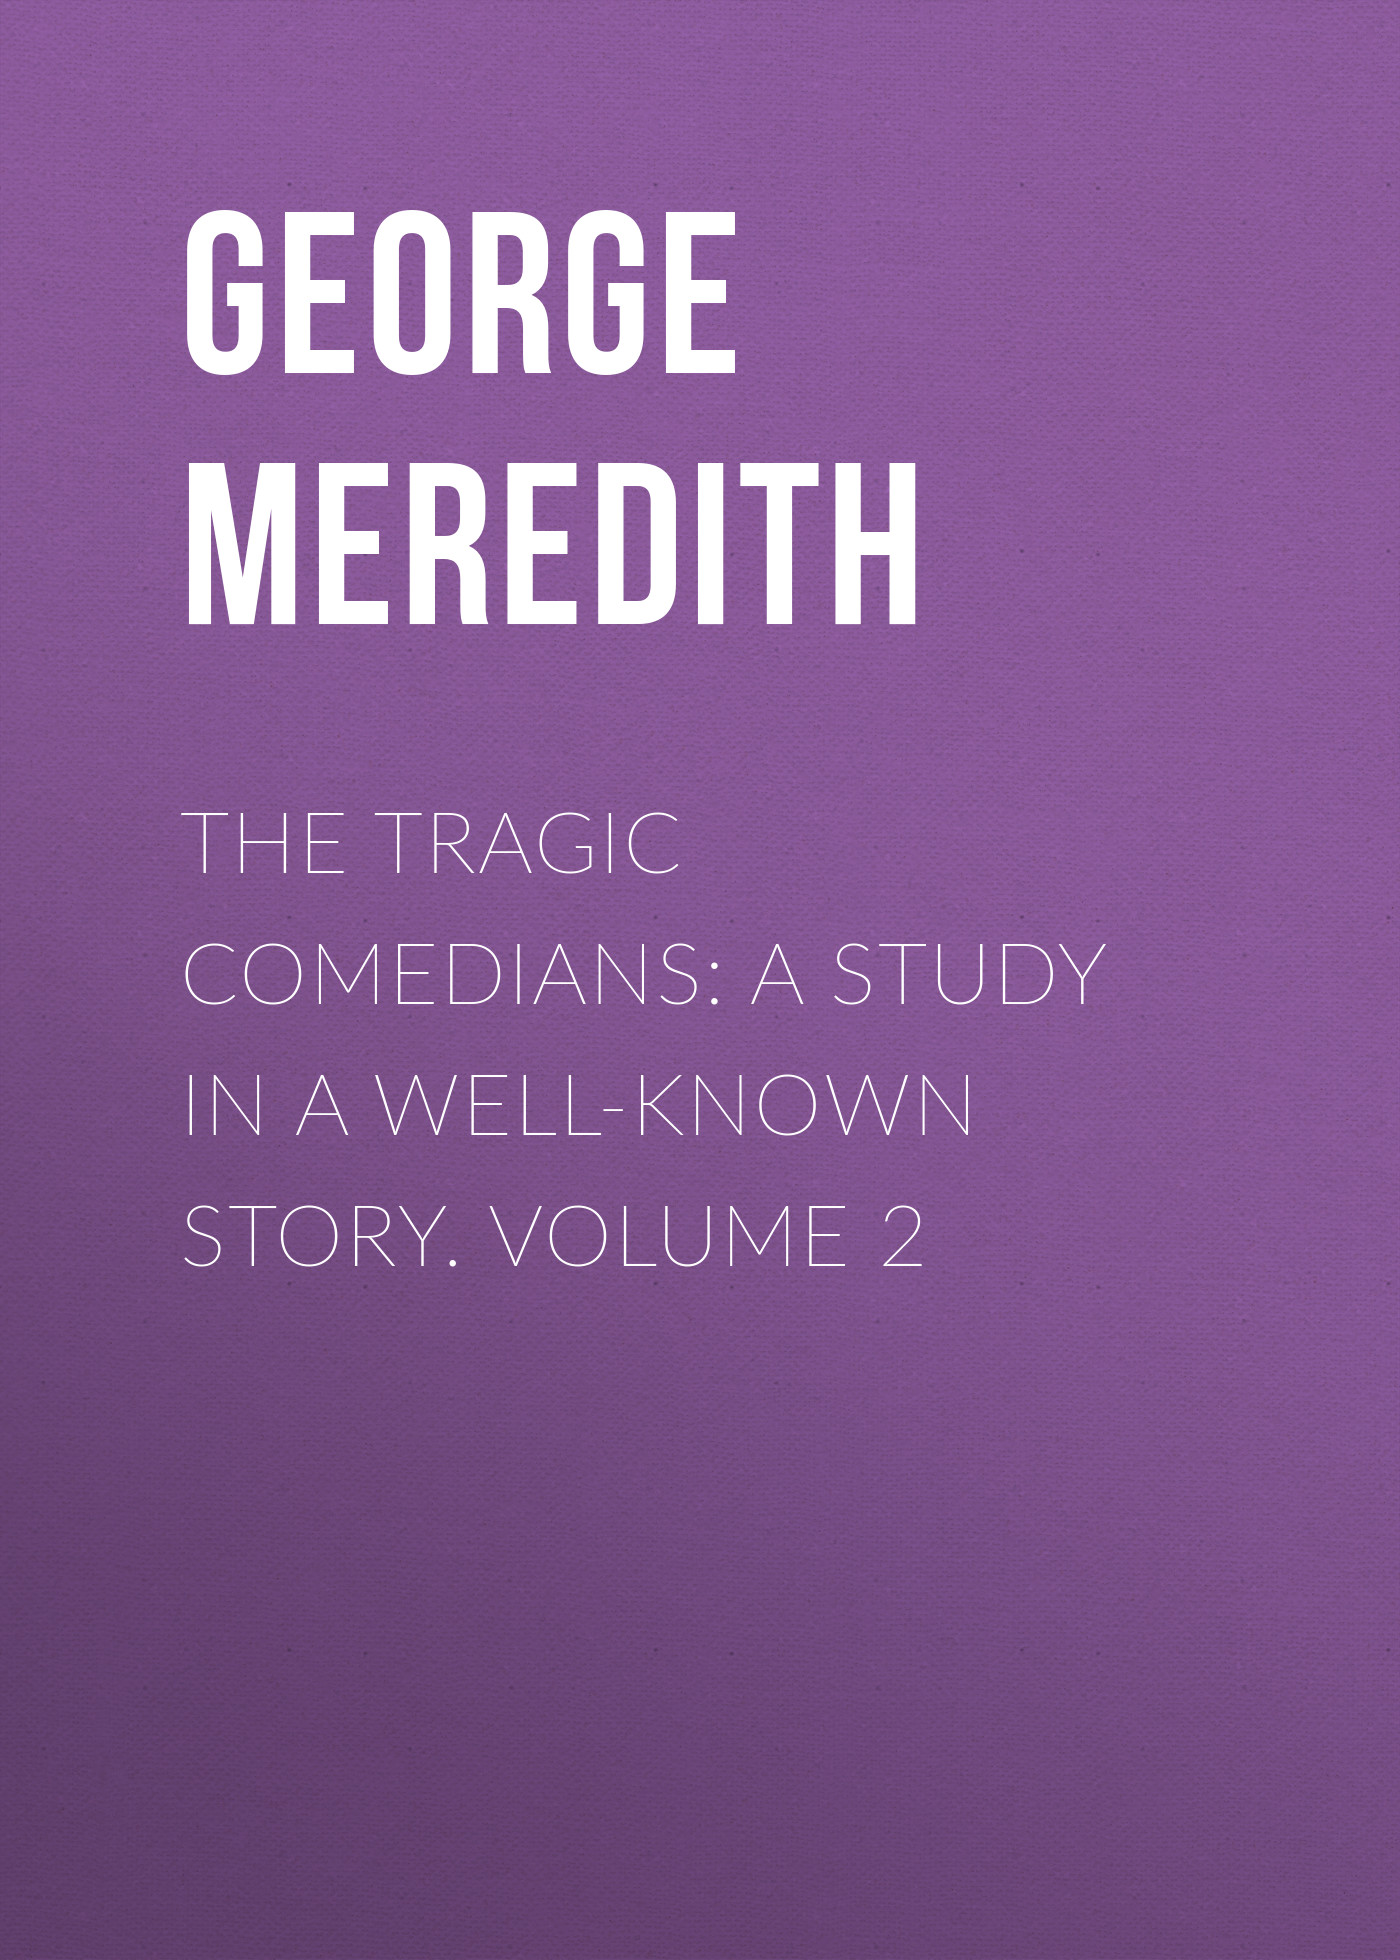 George Meredith The Tragic Comedians: A Study in a Well-known Story. Volume 2 электрическая зубная щетка cs medica cs 561 kids